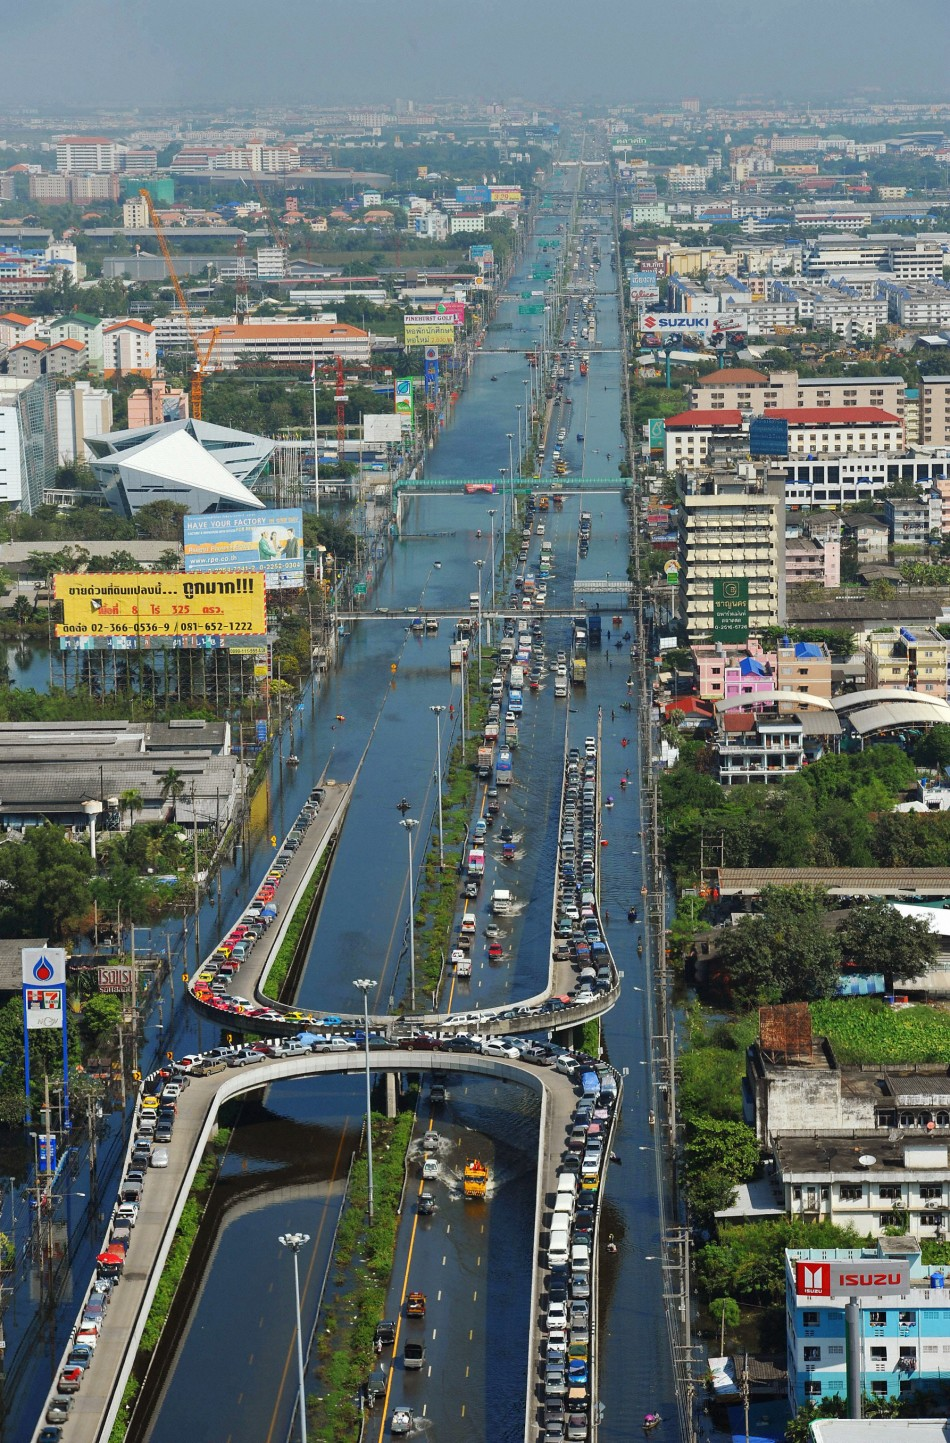 Thailand Floods A Third of the Country Under Water 30 Bn Loss to Economy PHOTOS